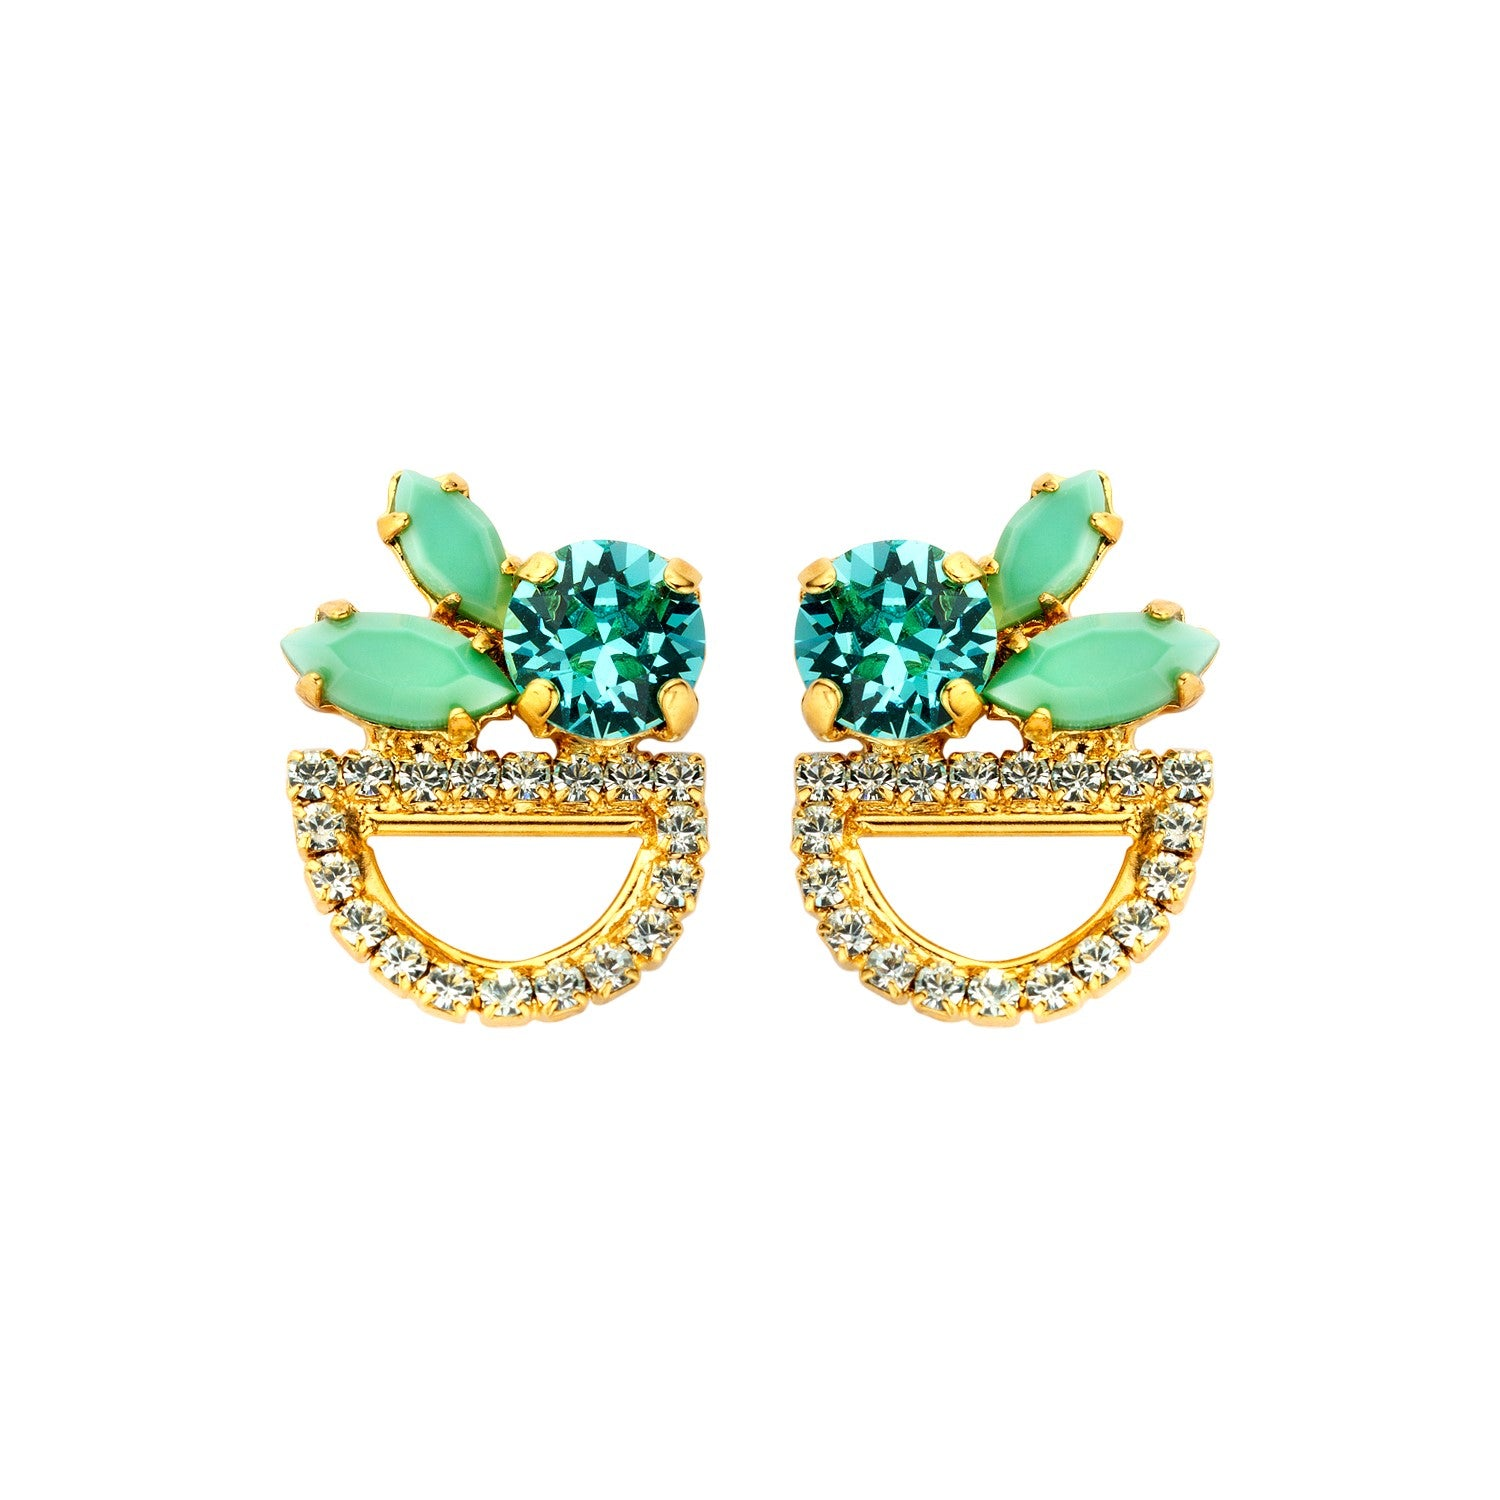 Moon shortie mint earrings - Souvenirs de Pomme